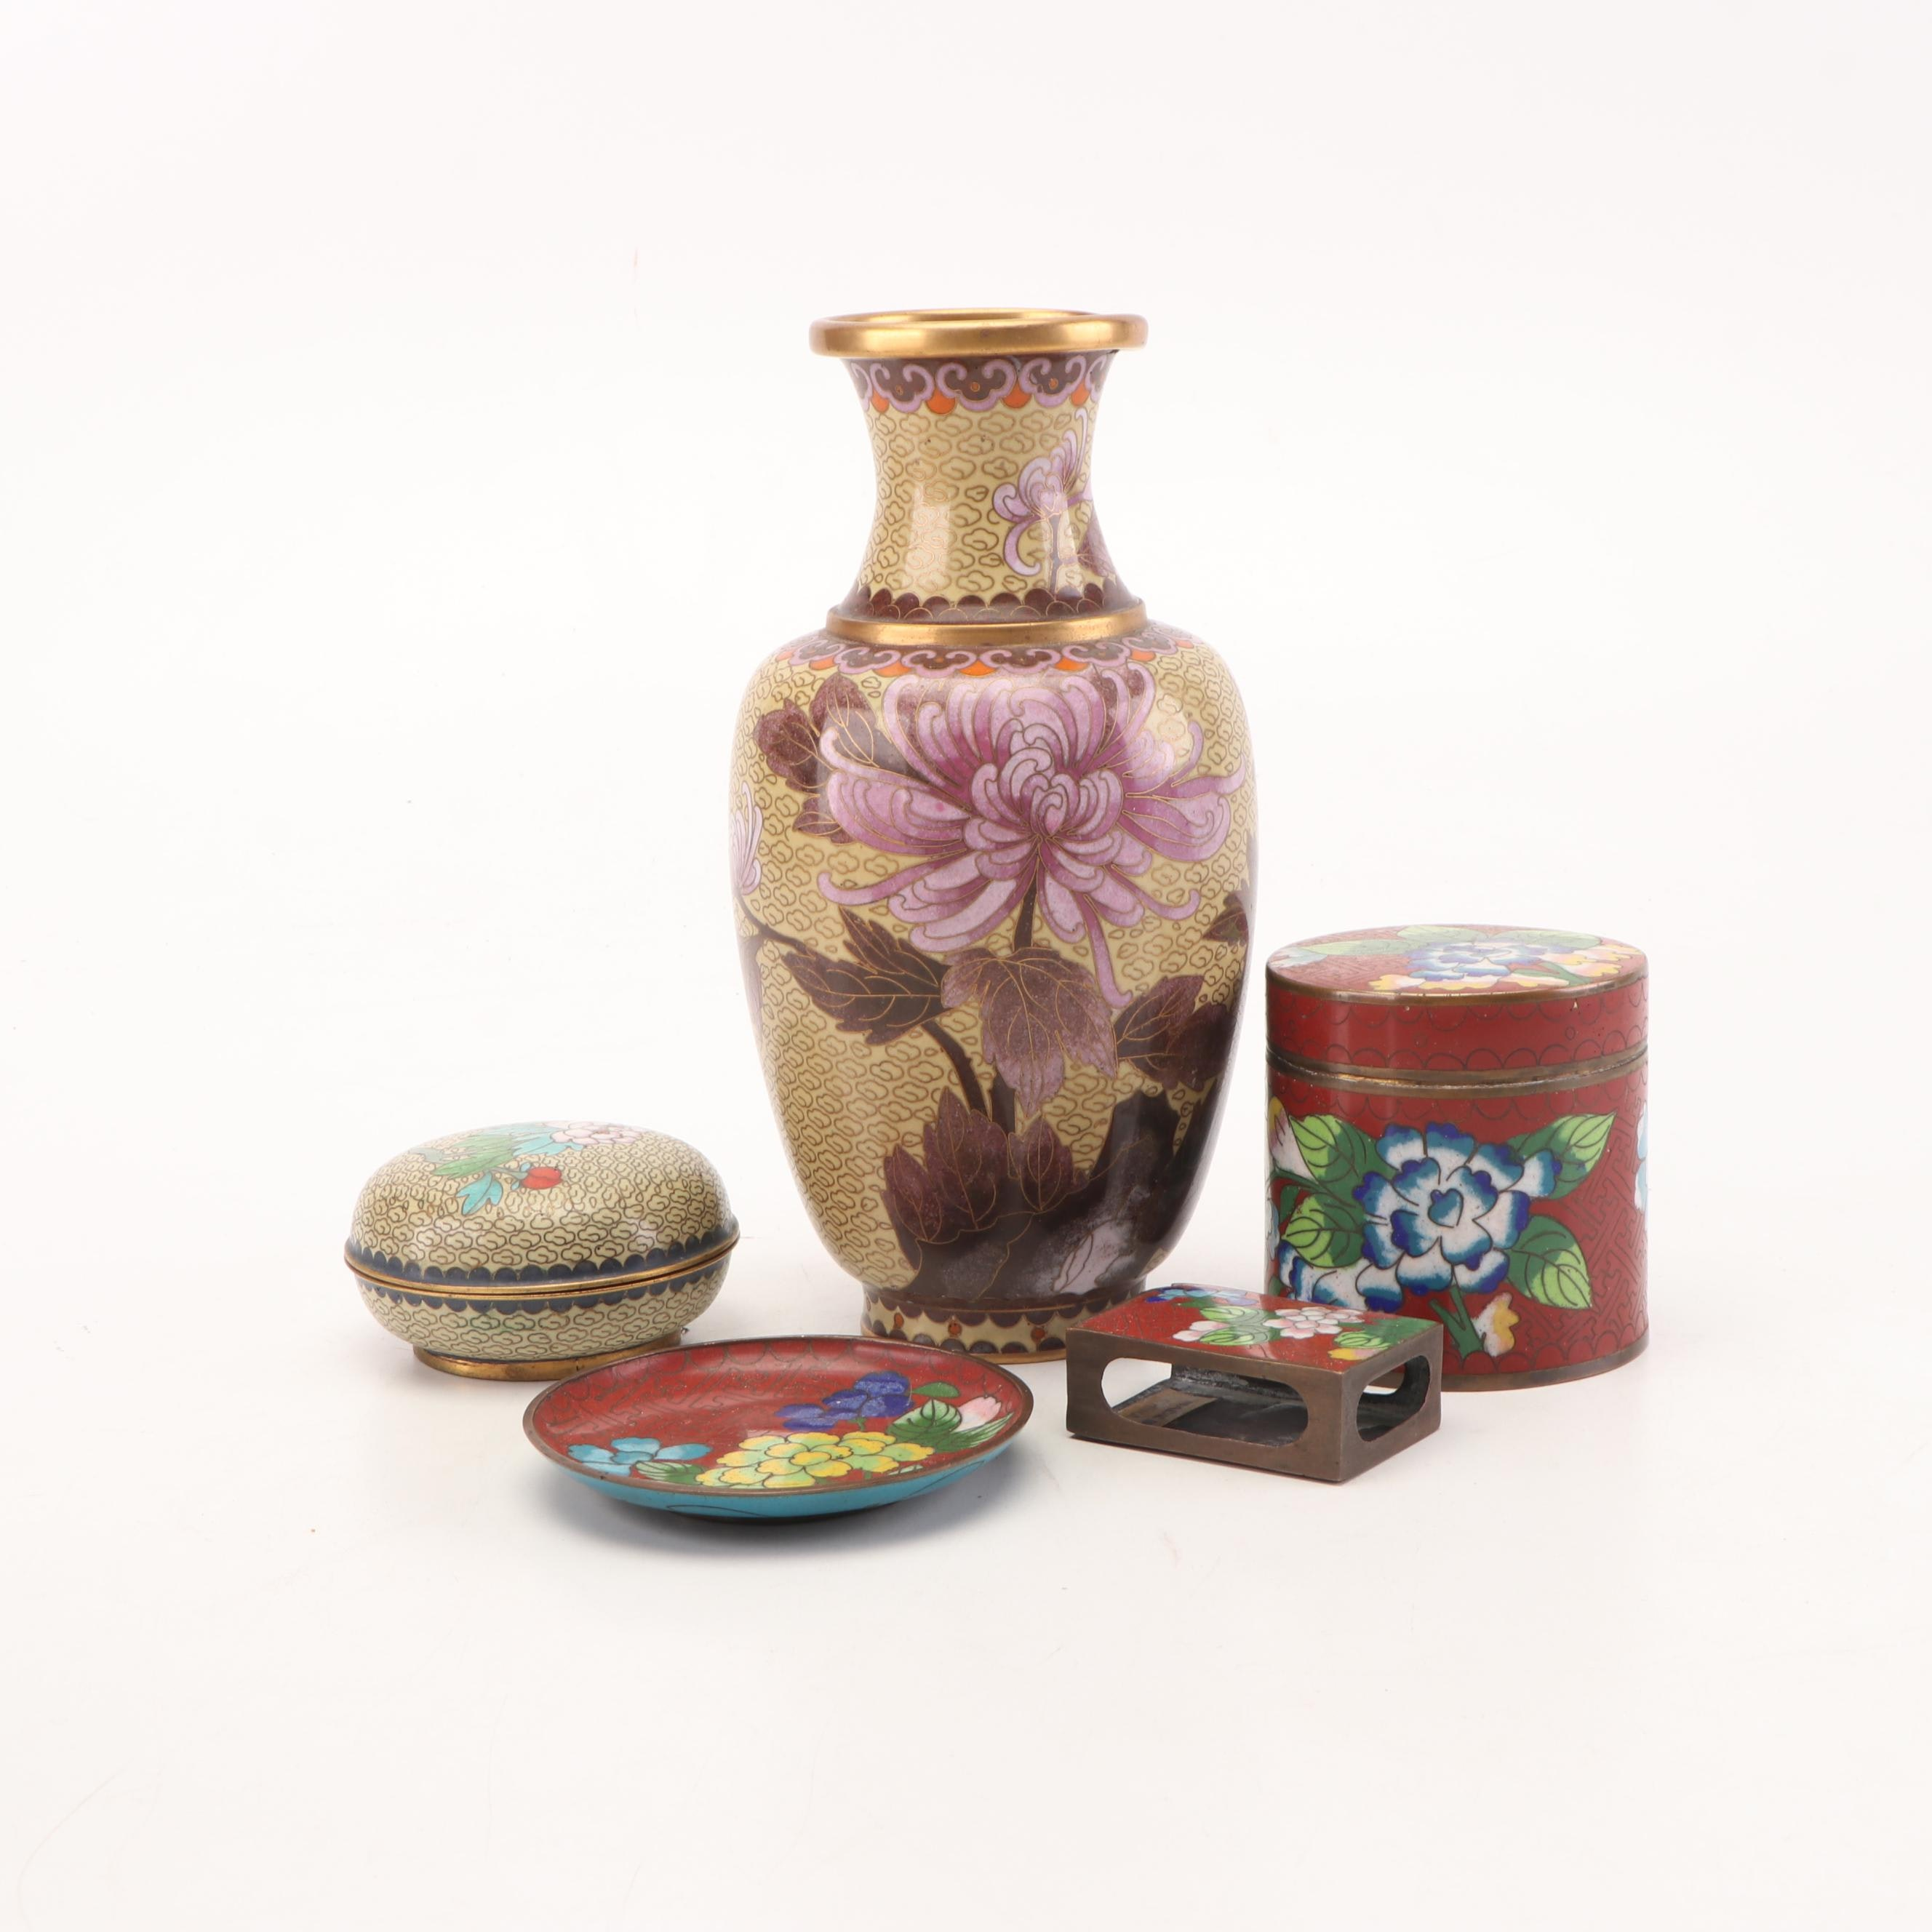 Chinese Cloisonné Vase and Decor